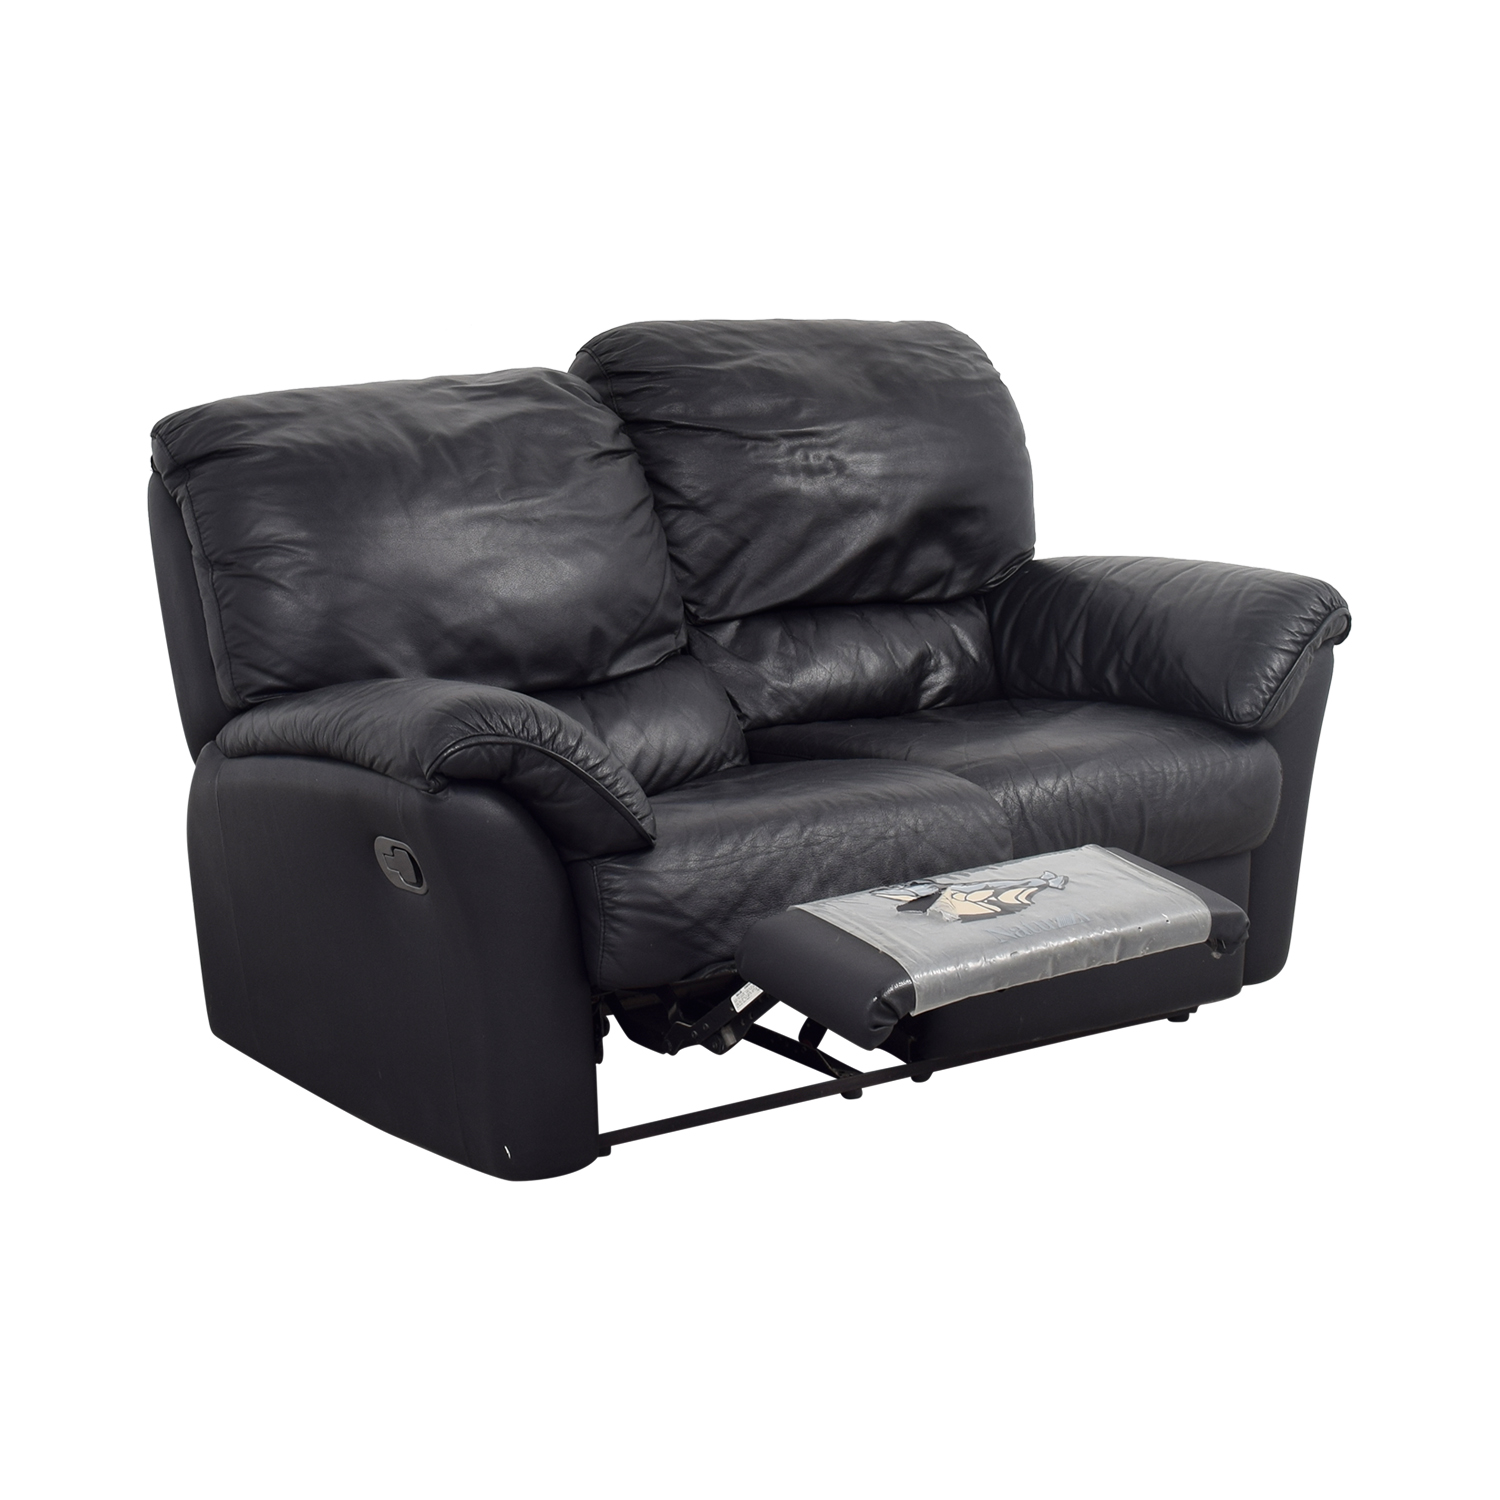 73 Off Natuzzi Natuzzi Leather Recliner Loveseat Sofas